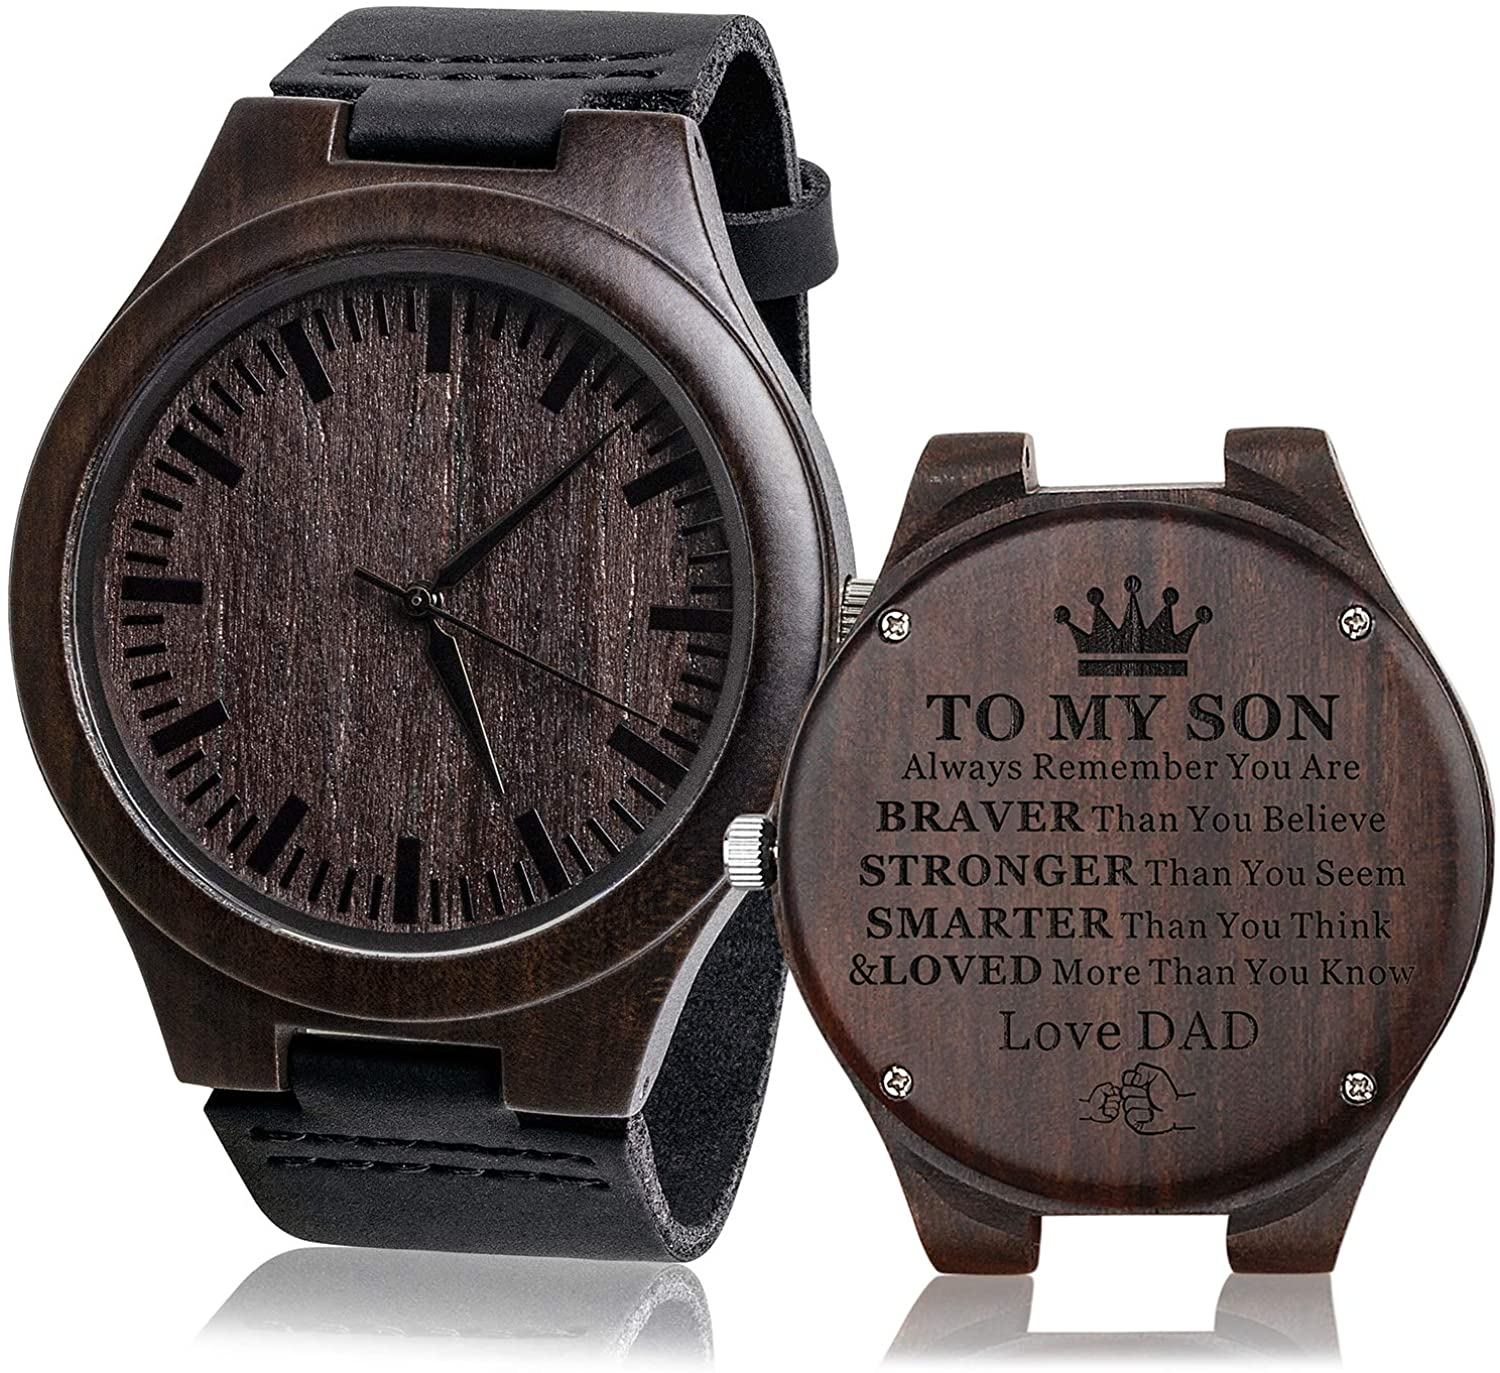 Custom Engraved Mens Vintage Analog Quartz Wooden Wrist Watches Handmade Casual Men Watch with Cowhide Leather Strap Personalized Gifts for Husband Dad to Son Gifts